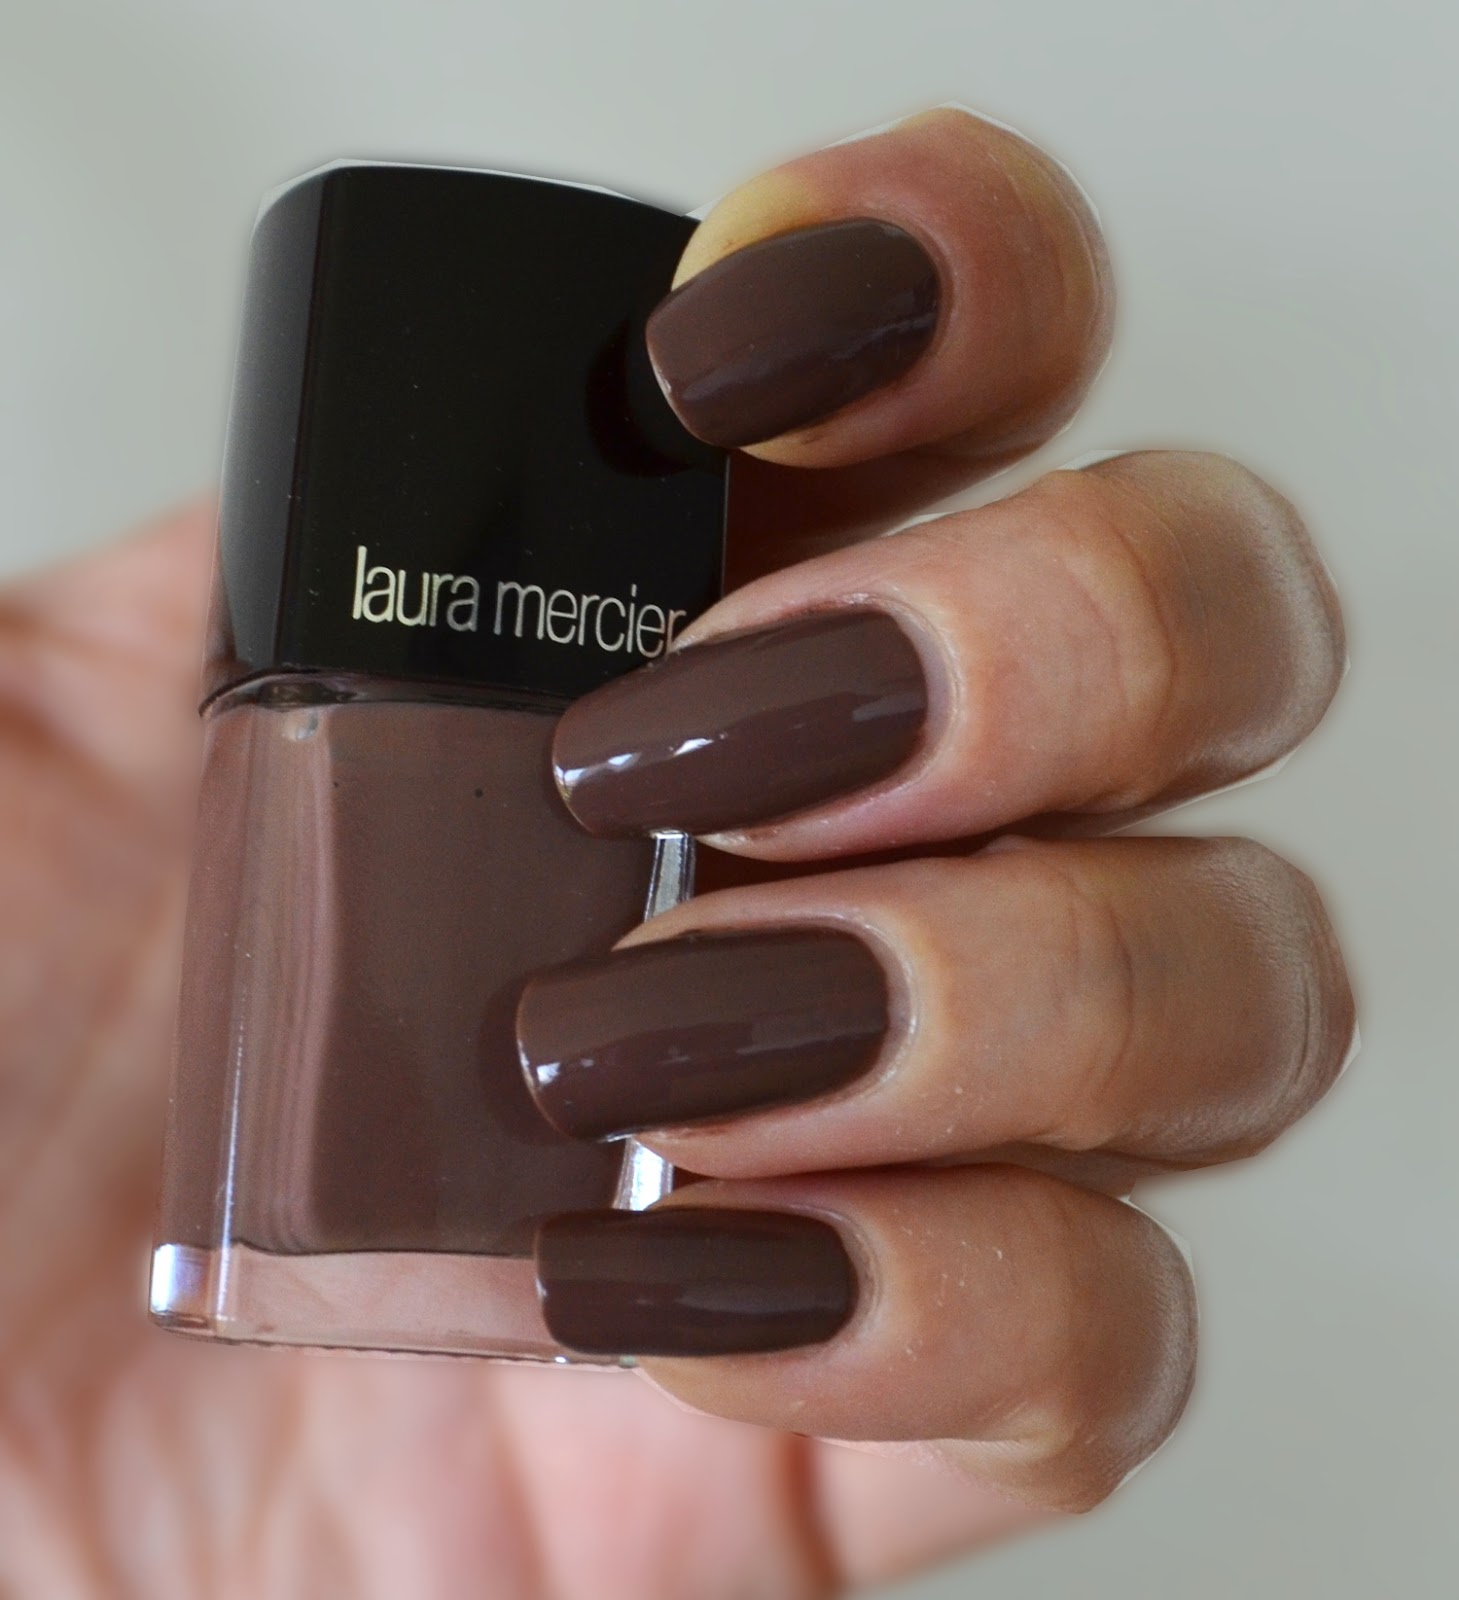 Laura Mercier Summer Nudes Collection Nail Polishes, Bare